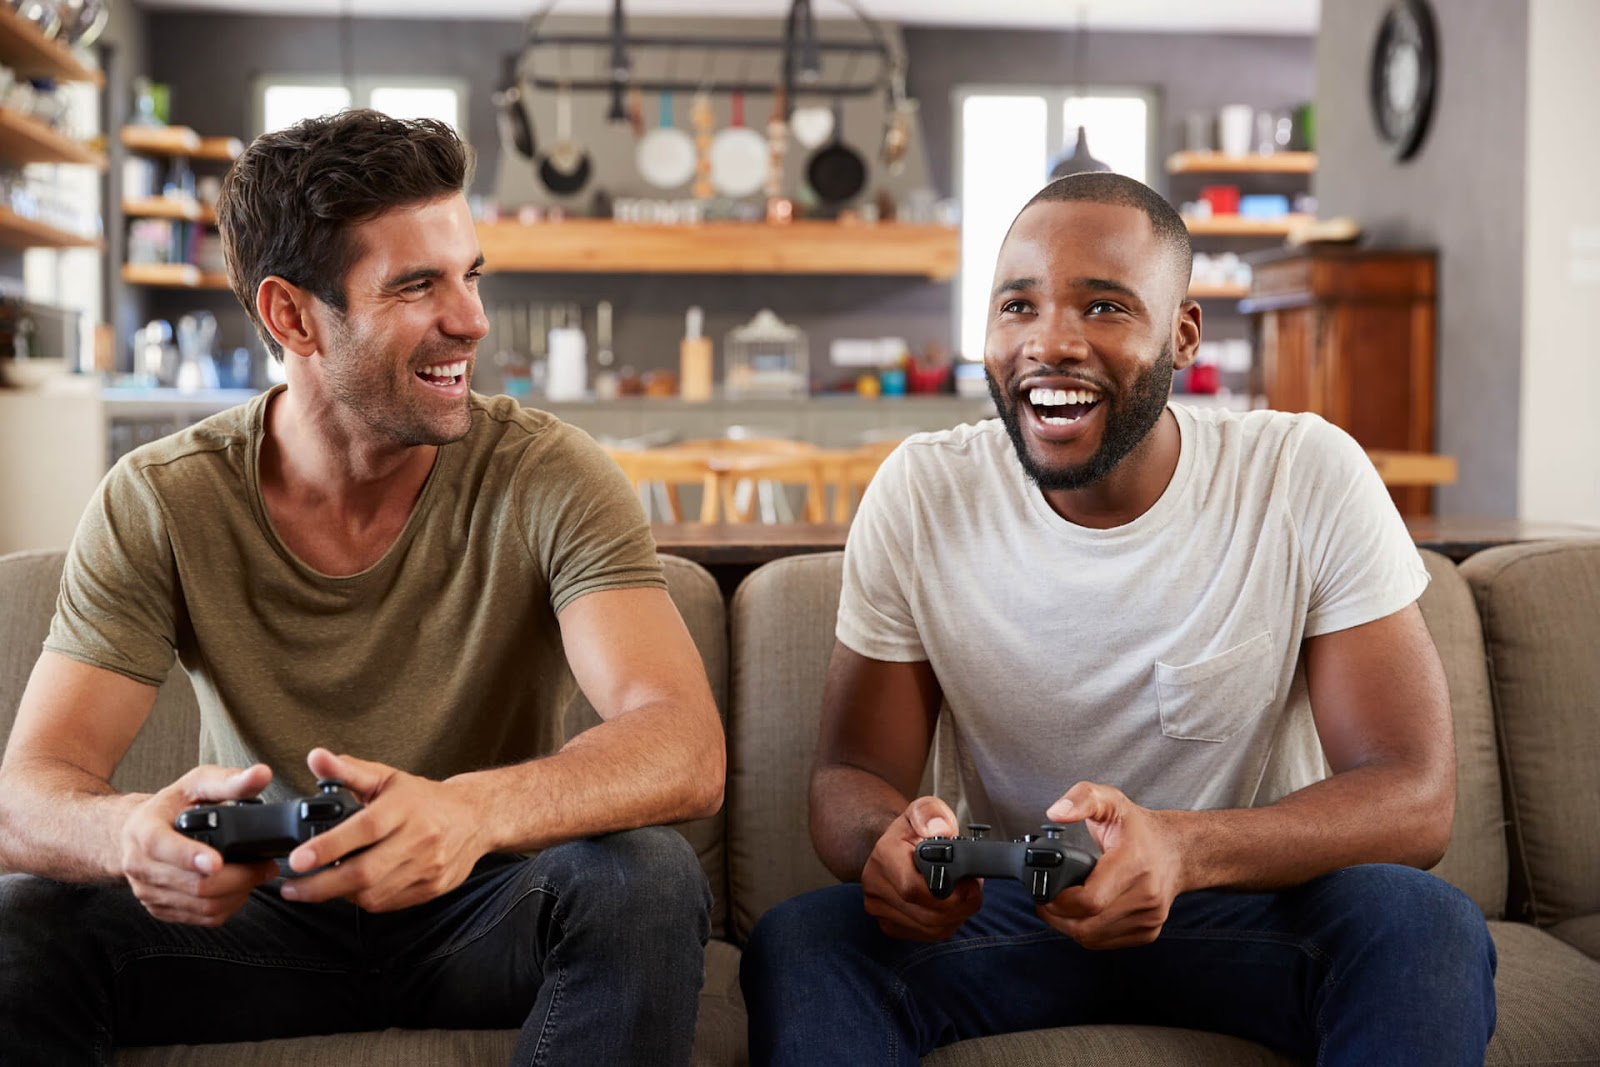 Two men playing video games together